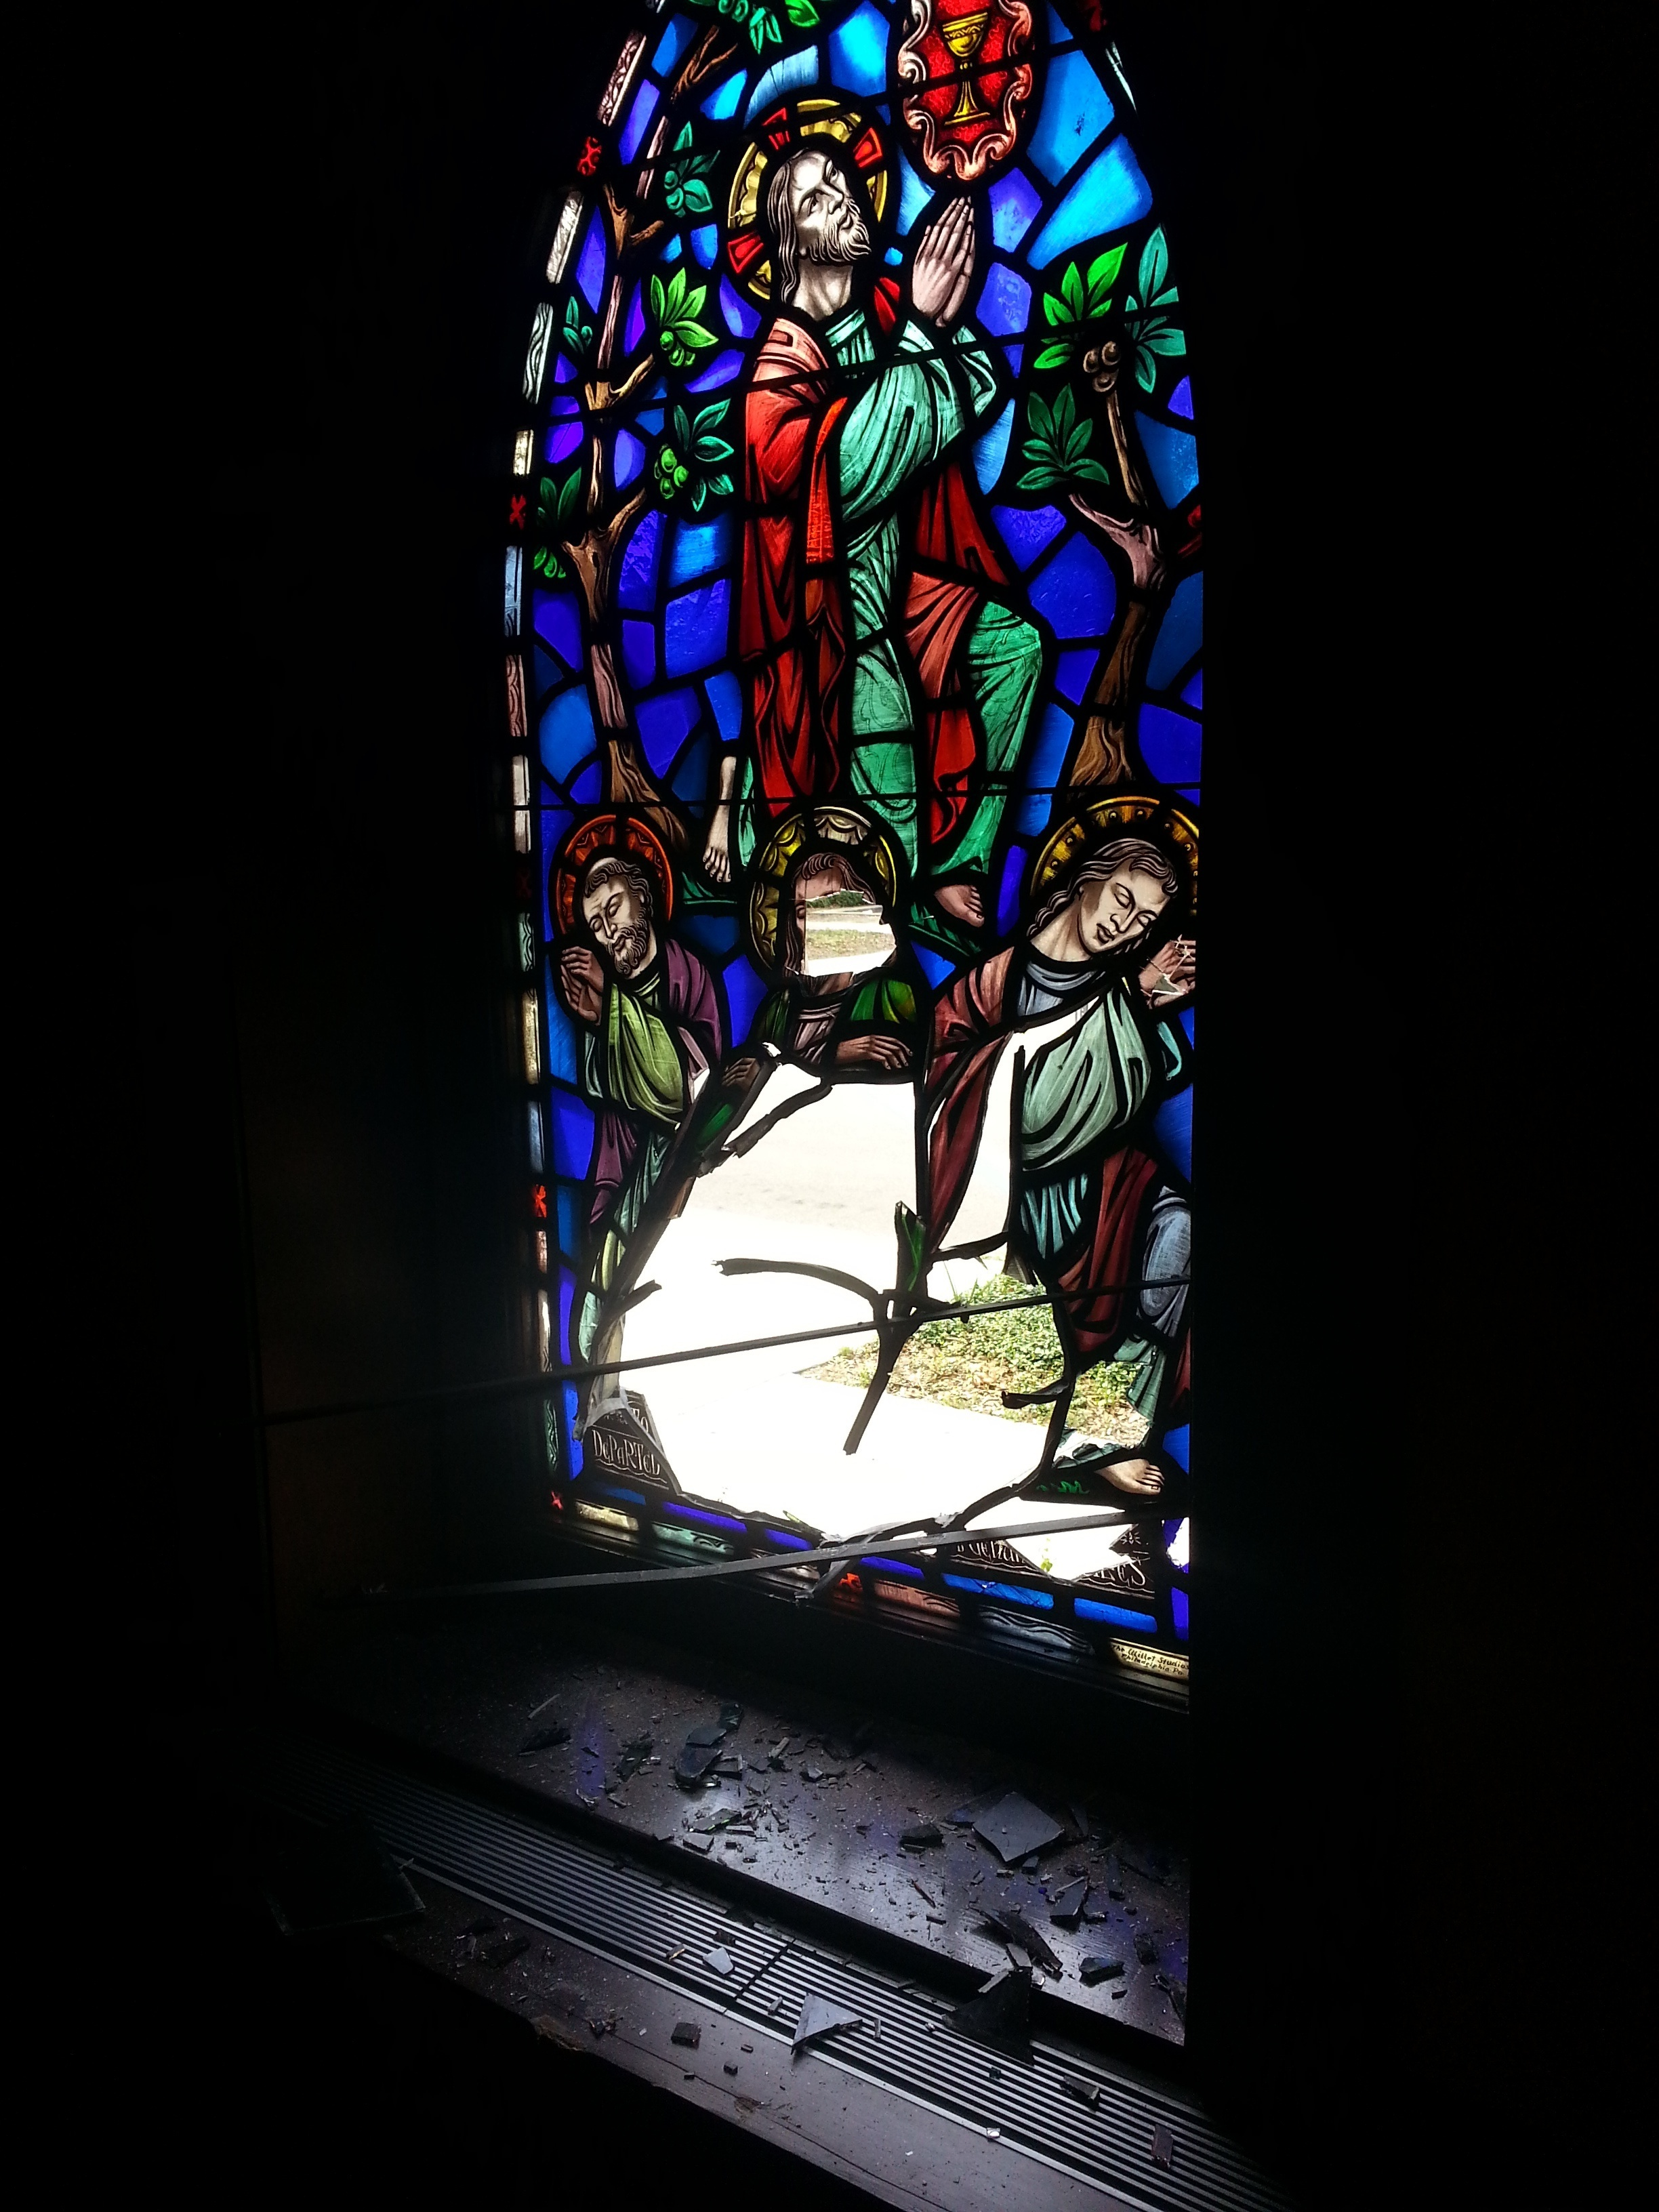 Damage to stained glass window at St Petersburg, Flordia